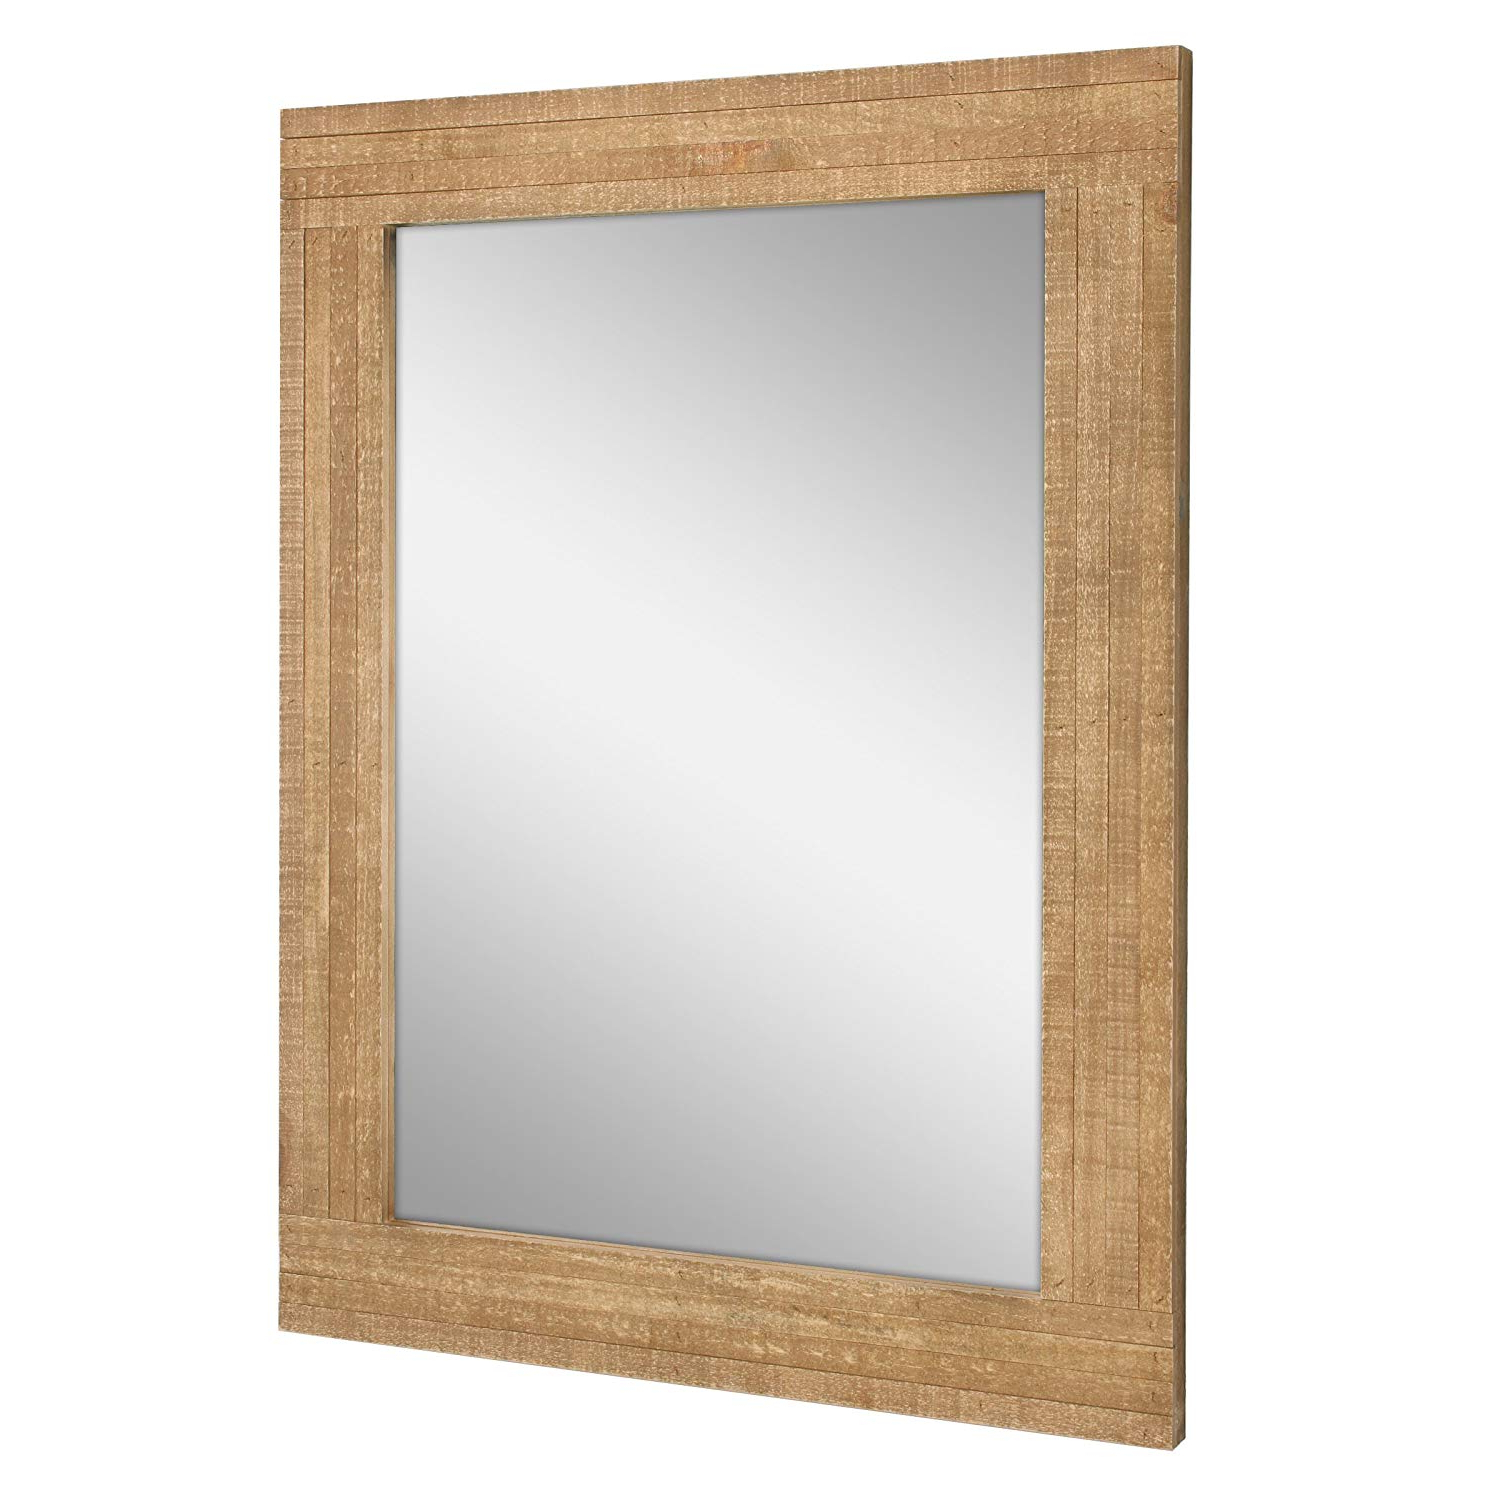 Newest Stonebriar Rustic Rectangular Natural Wood Frame Hanging Wall Mirror,  Farmhouse Decor For The Living Room, Bedroom, Bathroom, Office, And Entryway With Hanging Wall Mirrors (Gallery 18 of 20)